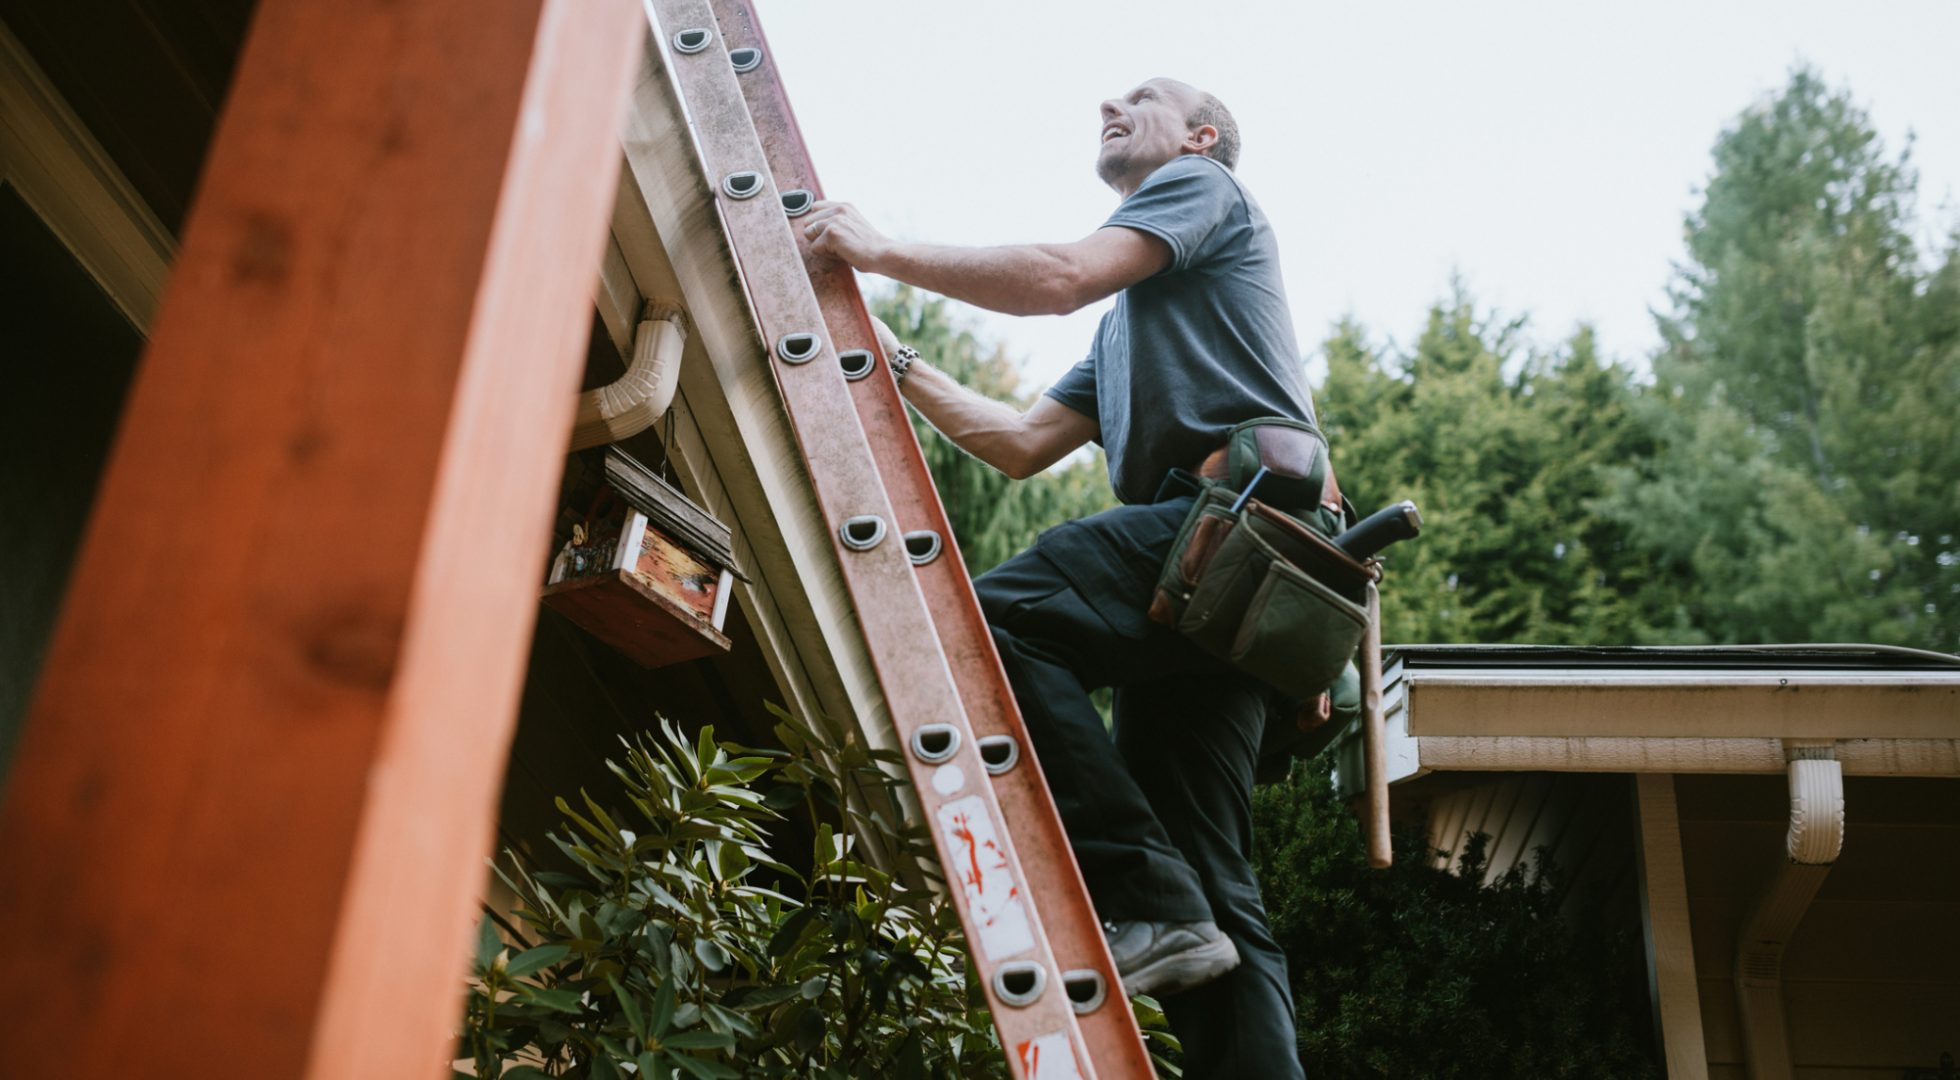 A man climbs a ladder to his home's roof